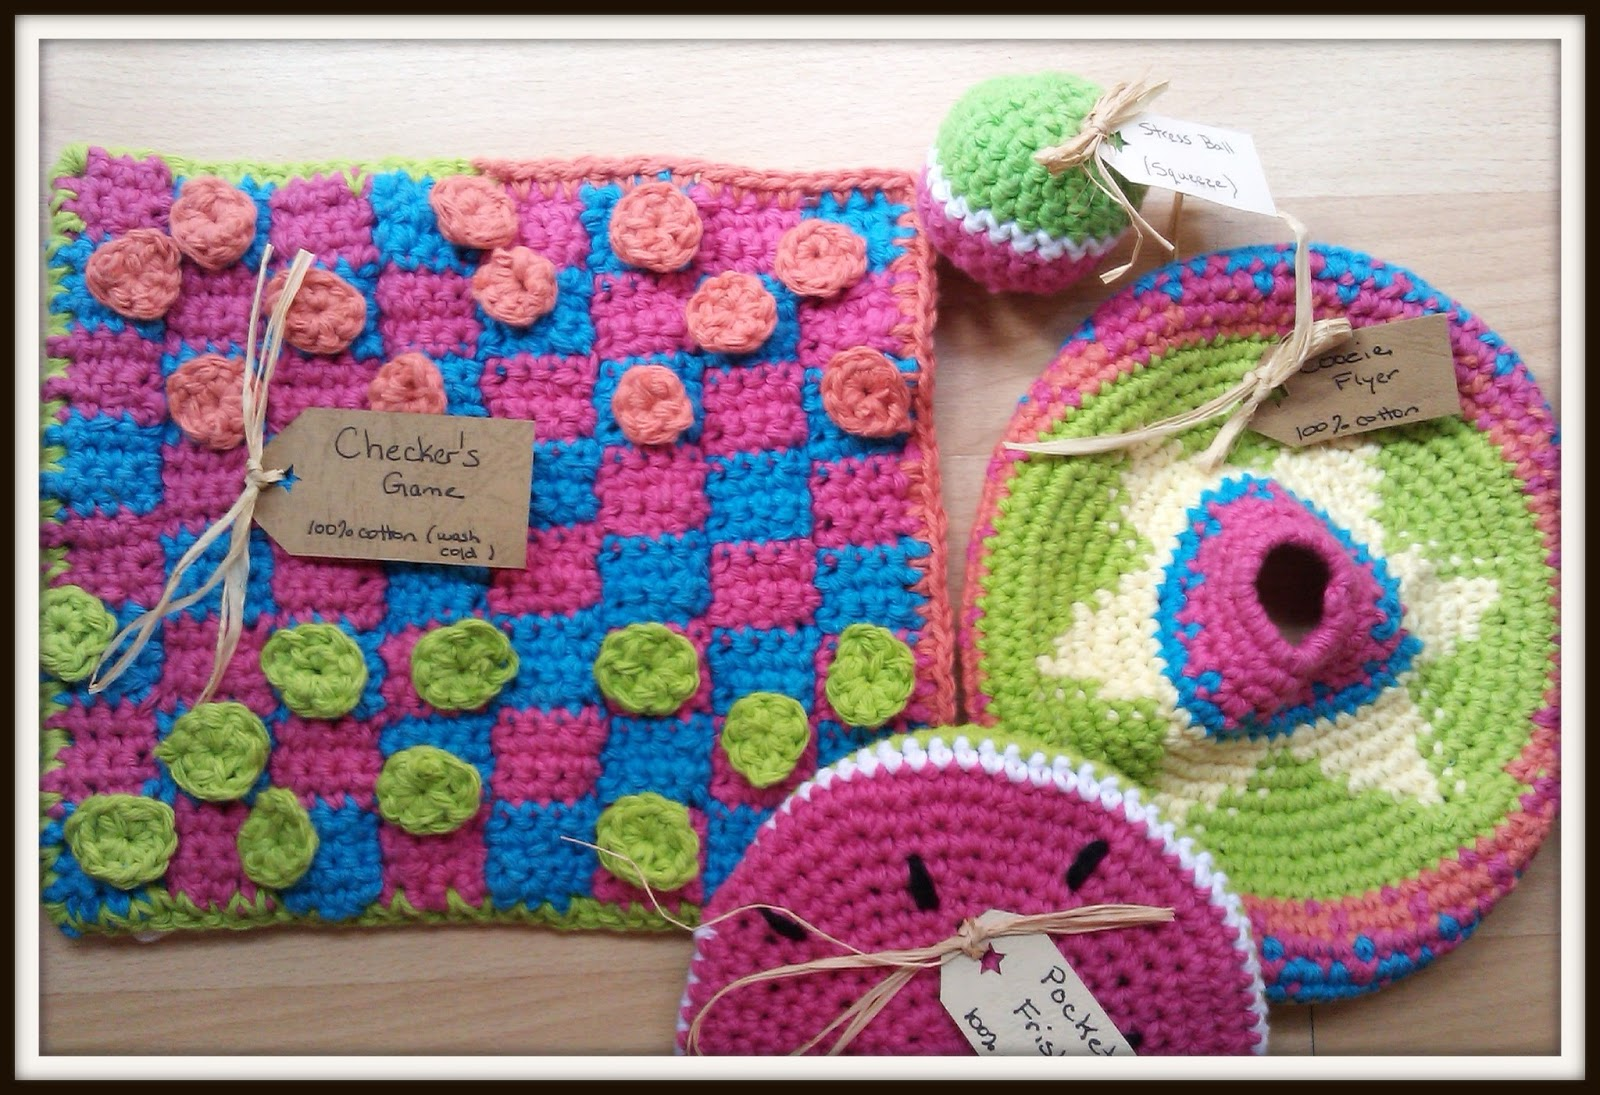 Free Crochet Patterns Games : Double Treble Craft Adventures: Crochet Tic Tac Toe Game